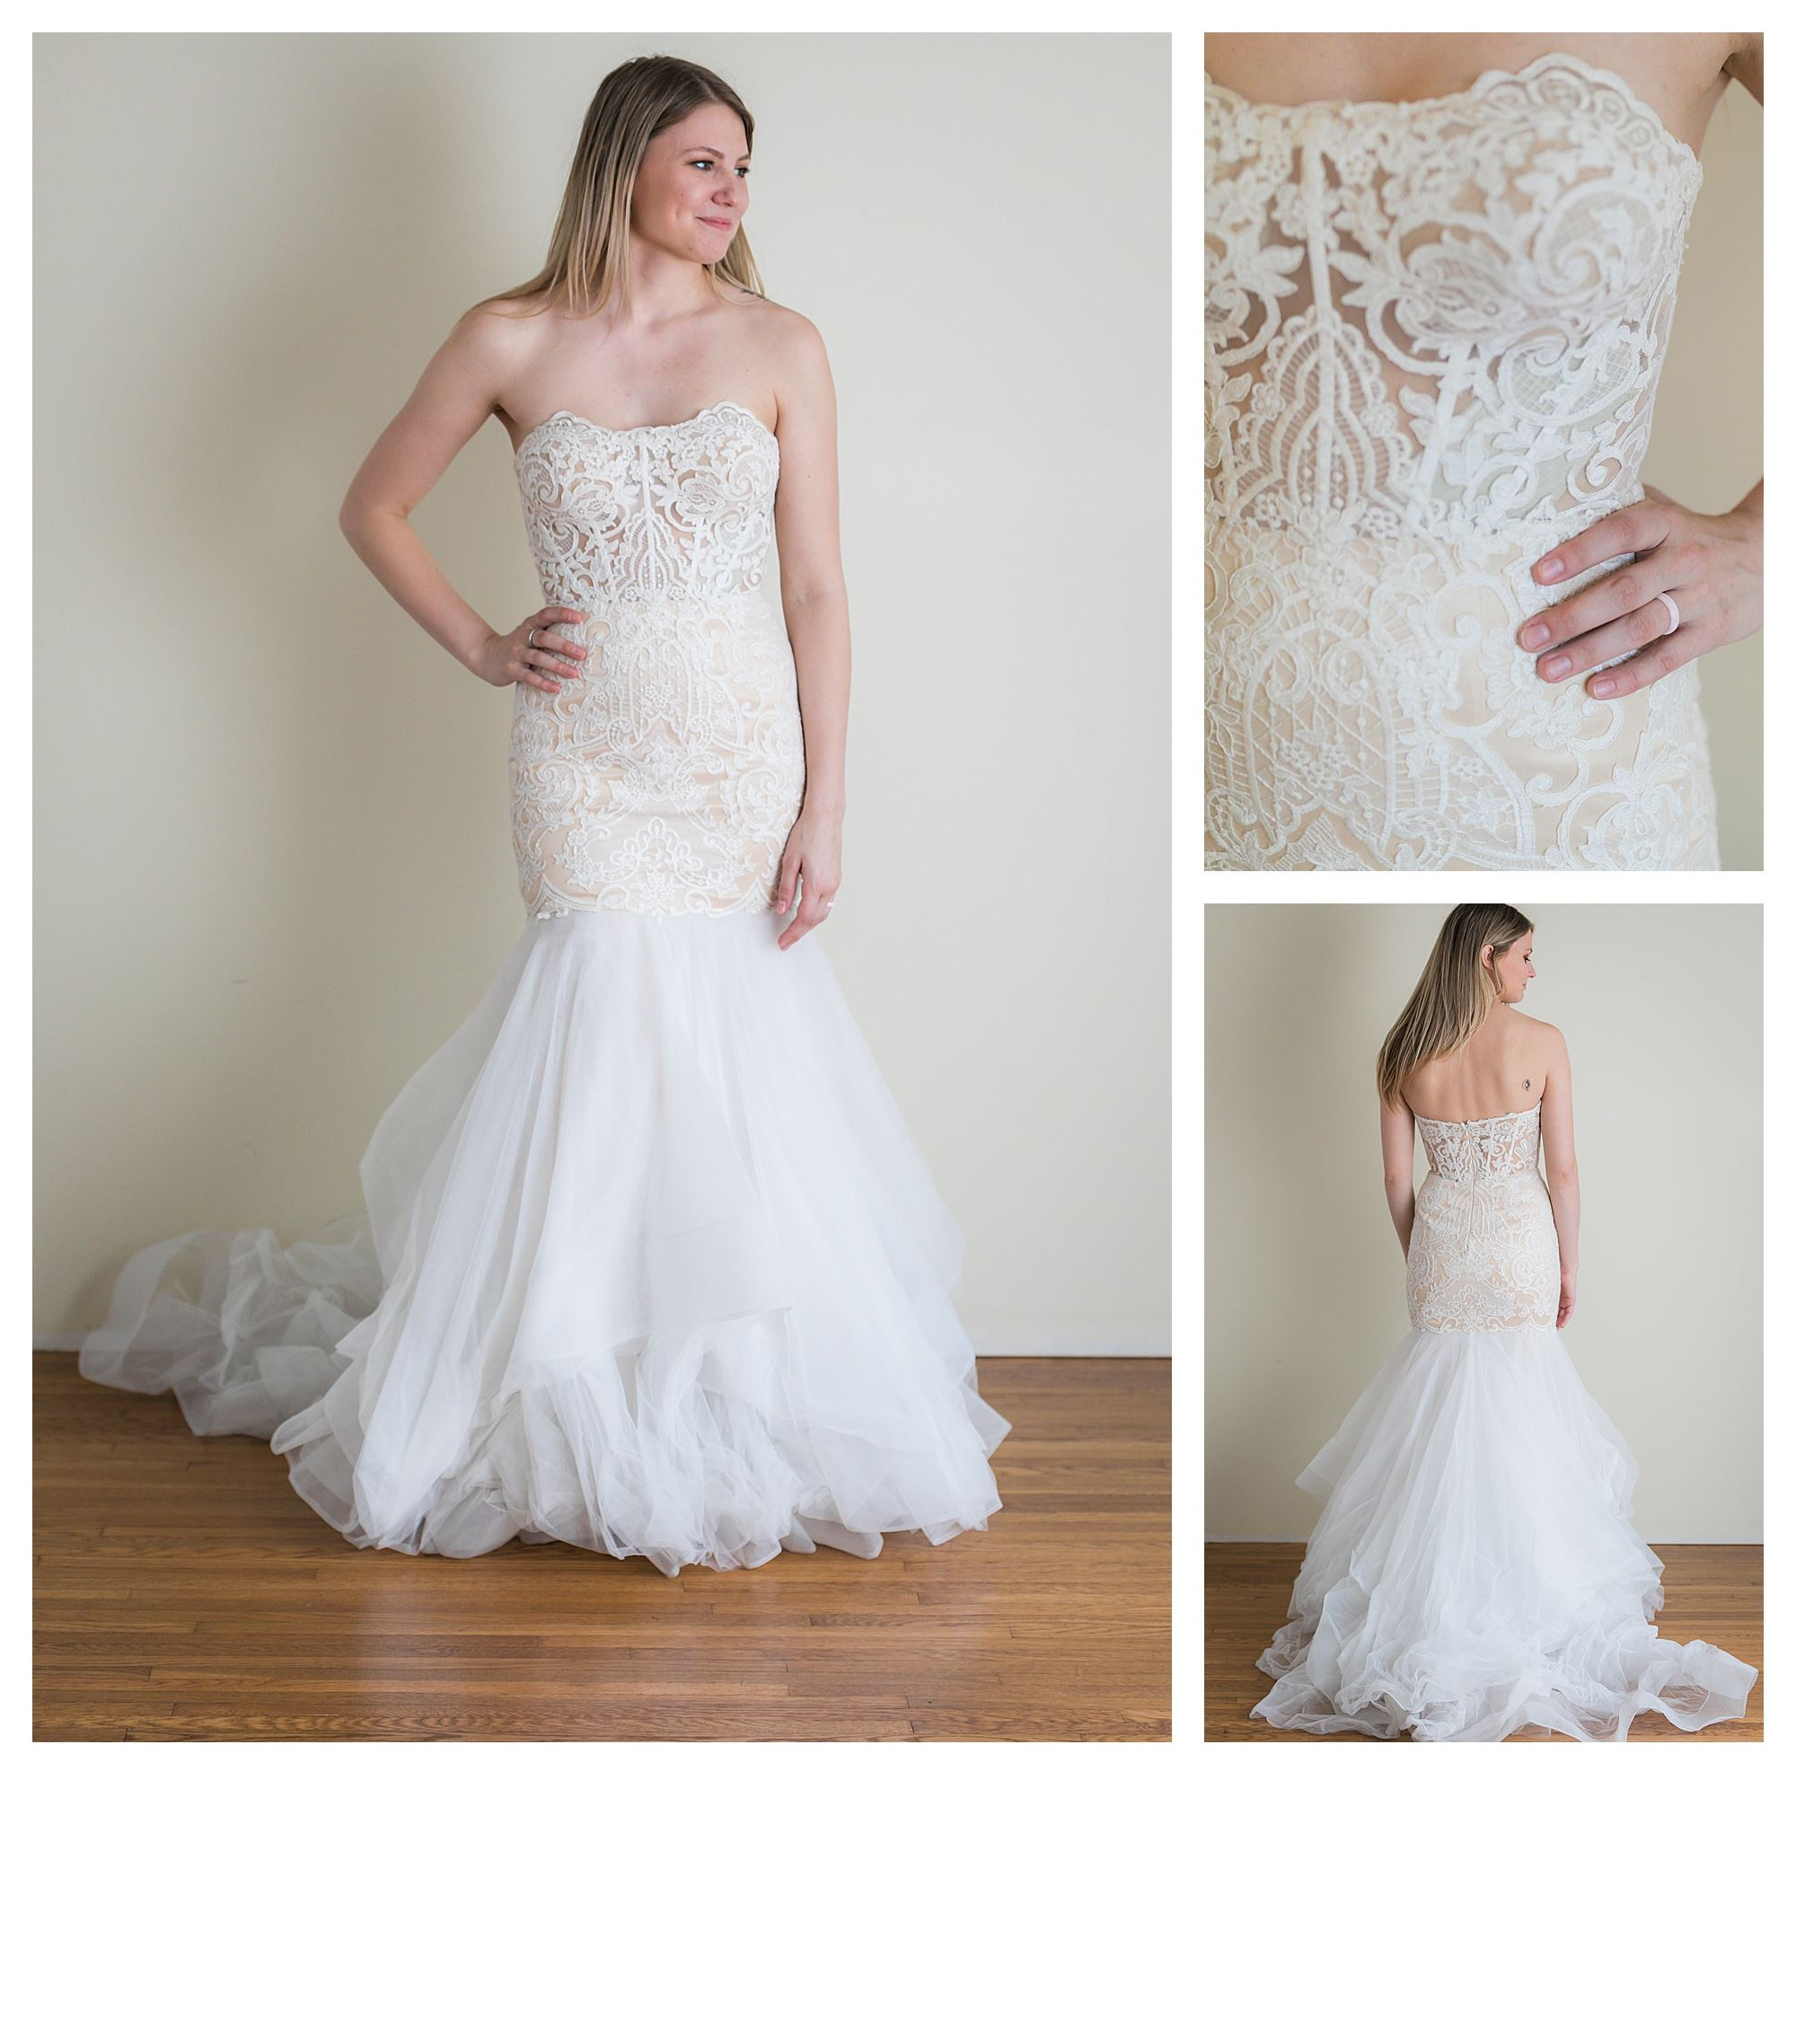 Sherry - Size 8 - Ivory/Lt Nude - Originally priced $1699 - Sample box price $1199